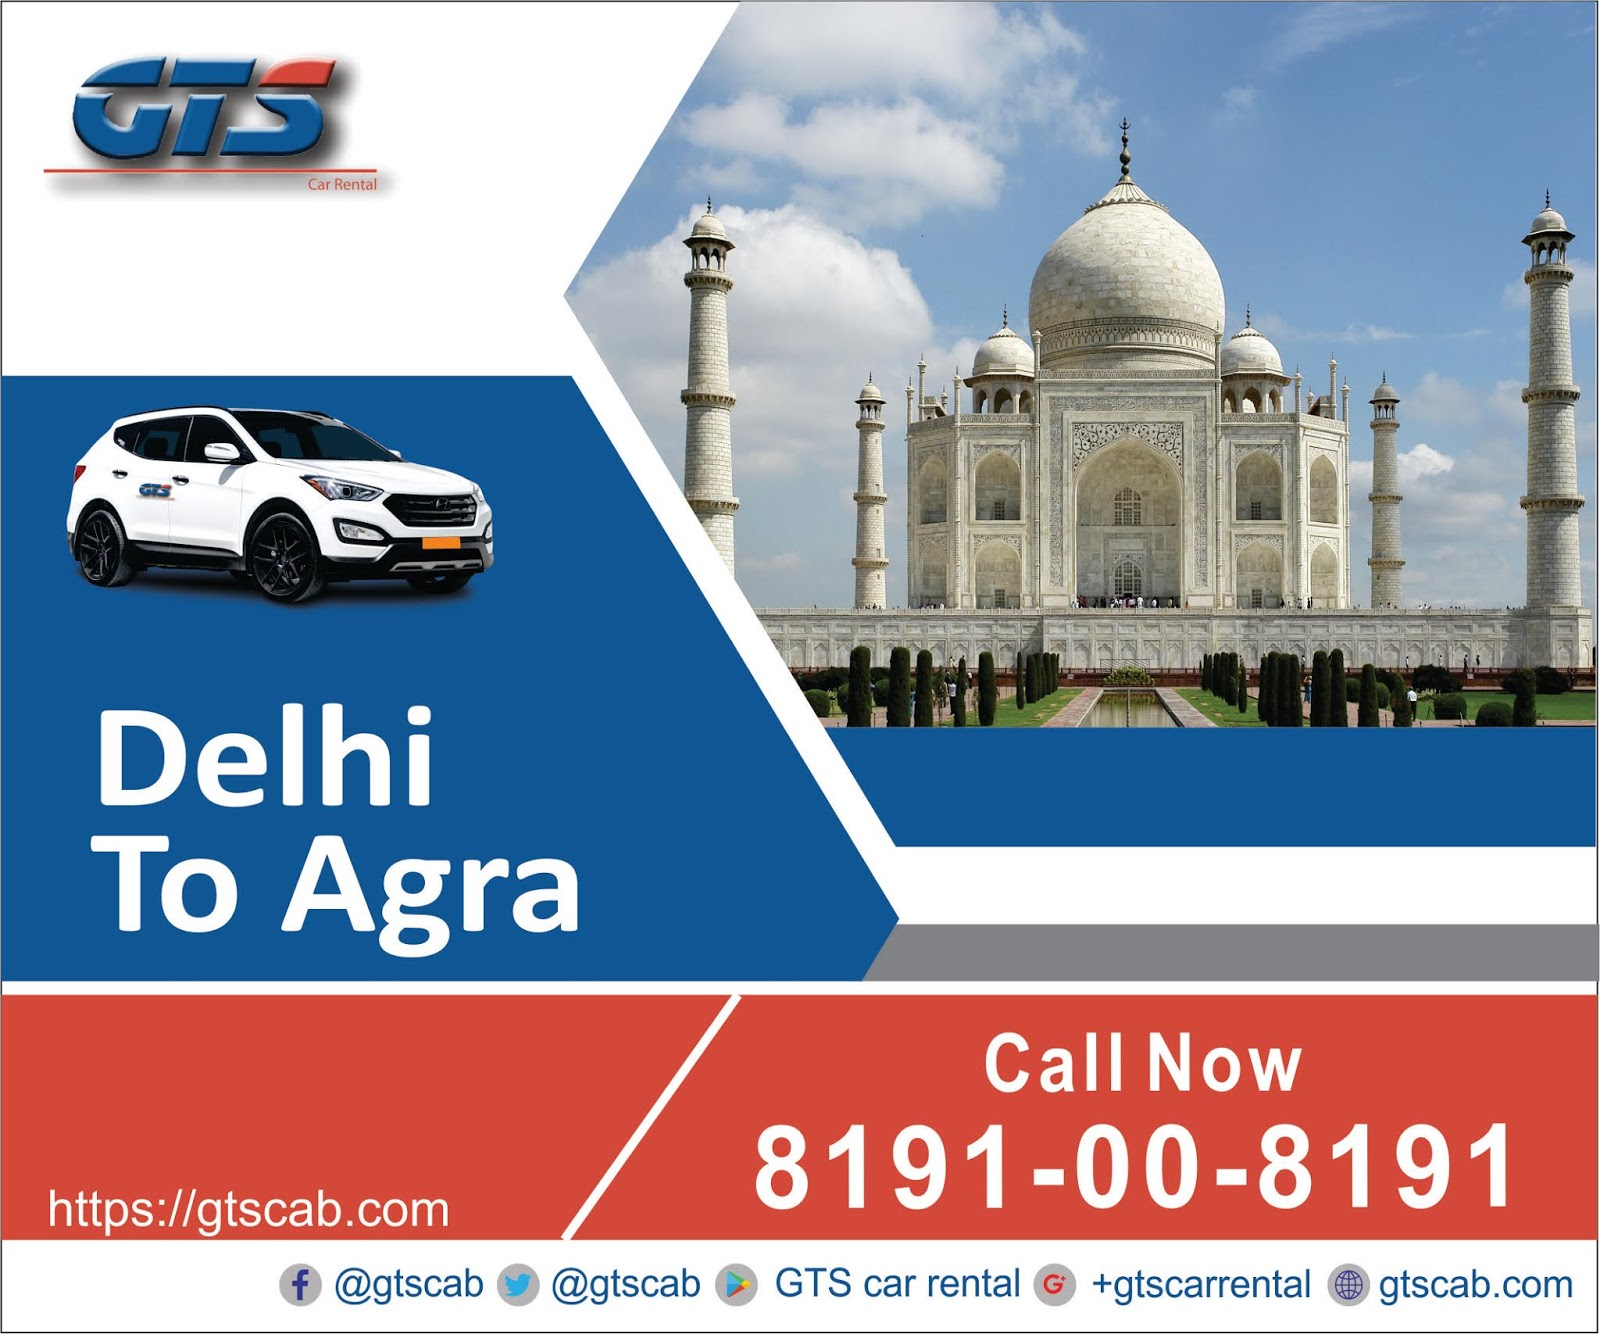 GTS Cab - GTS Car Rental : Looking for Delhi to Agra cab service